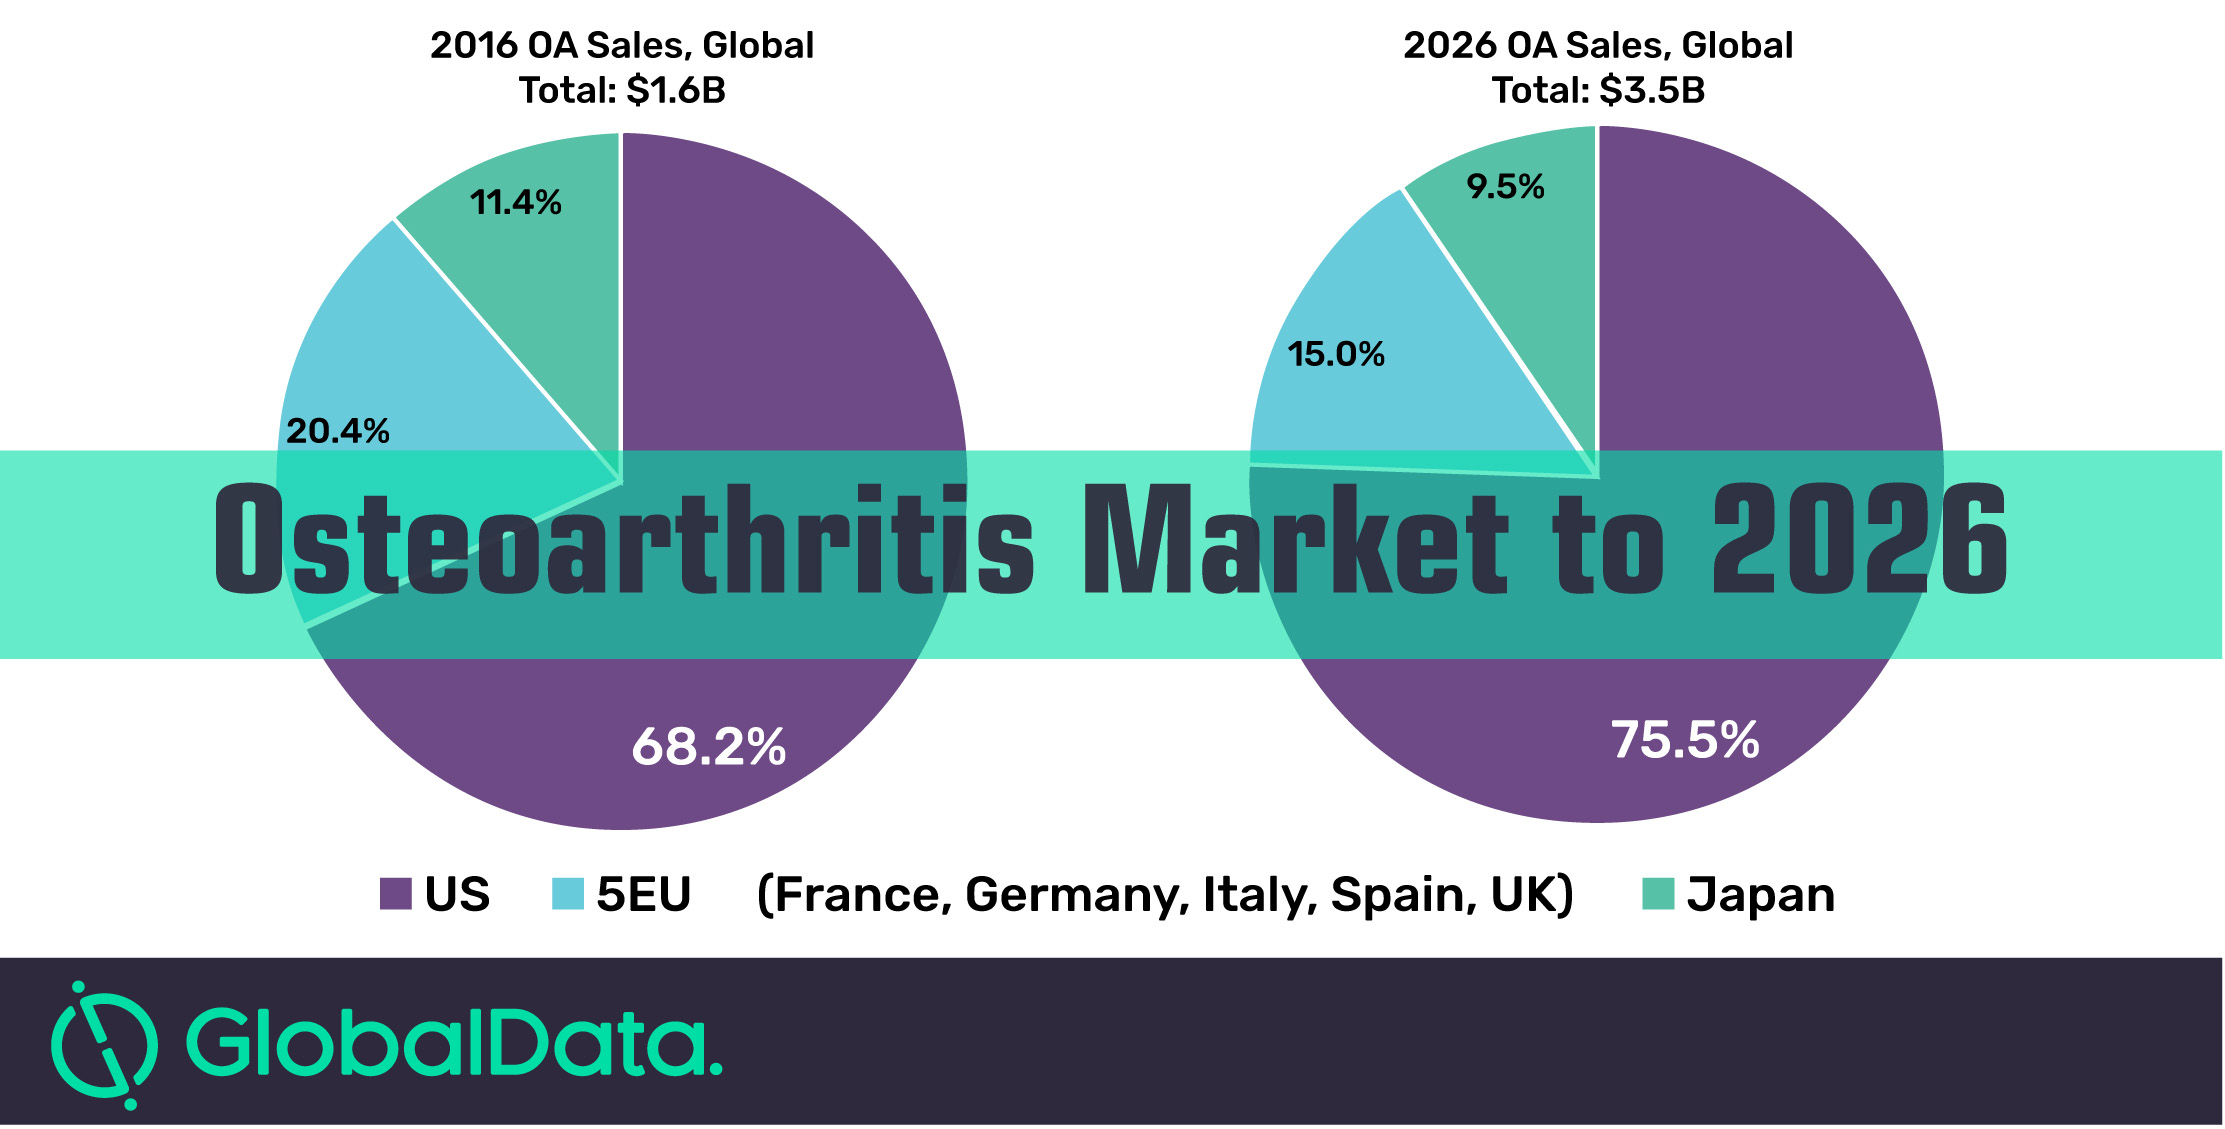 Osteoarthritis 7MM market set to be worth $3.5 billion by 2026